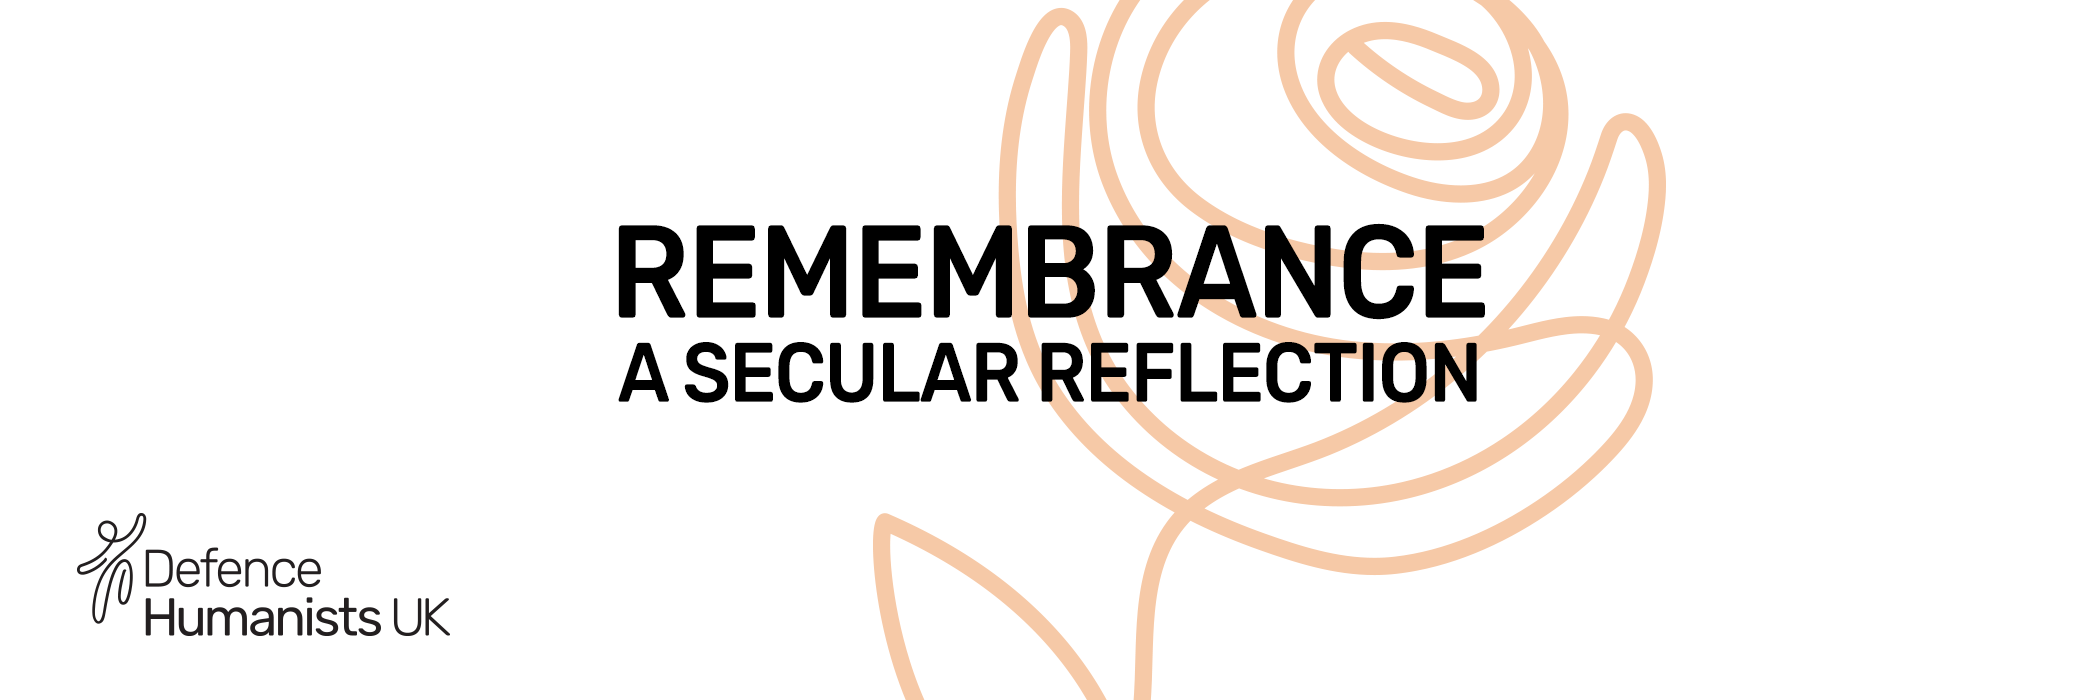 Remembrance a secular reflection humanists uk remembrance a secular reflection buycottarizona